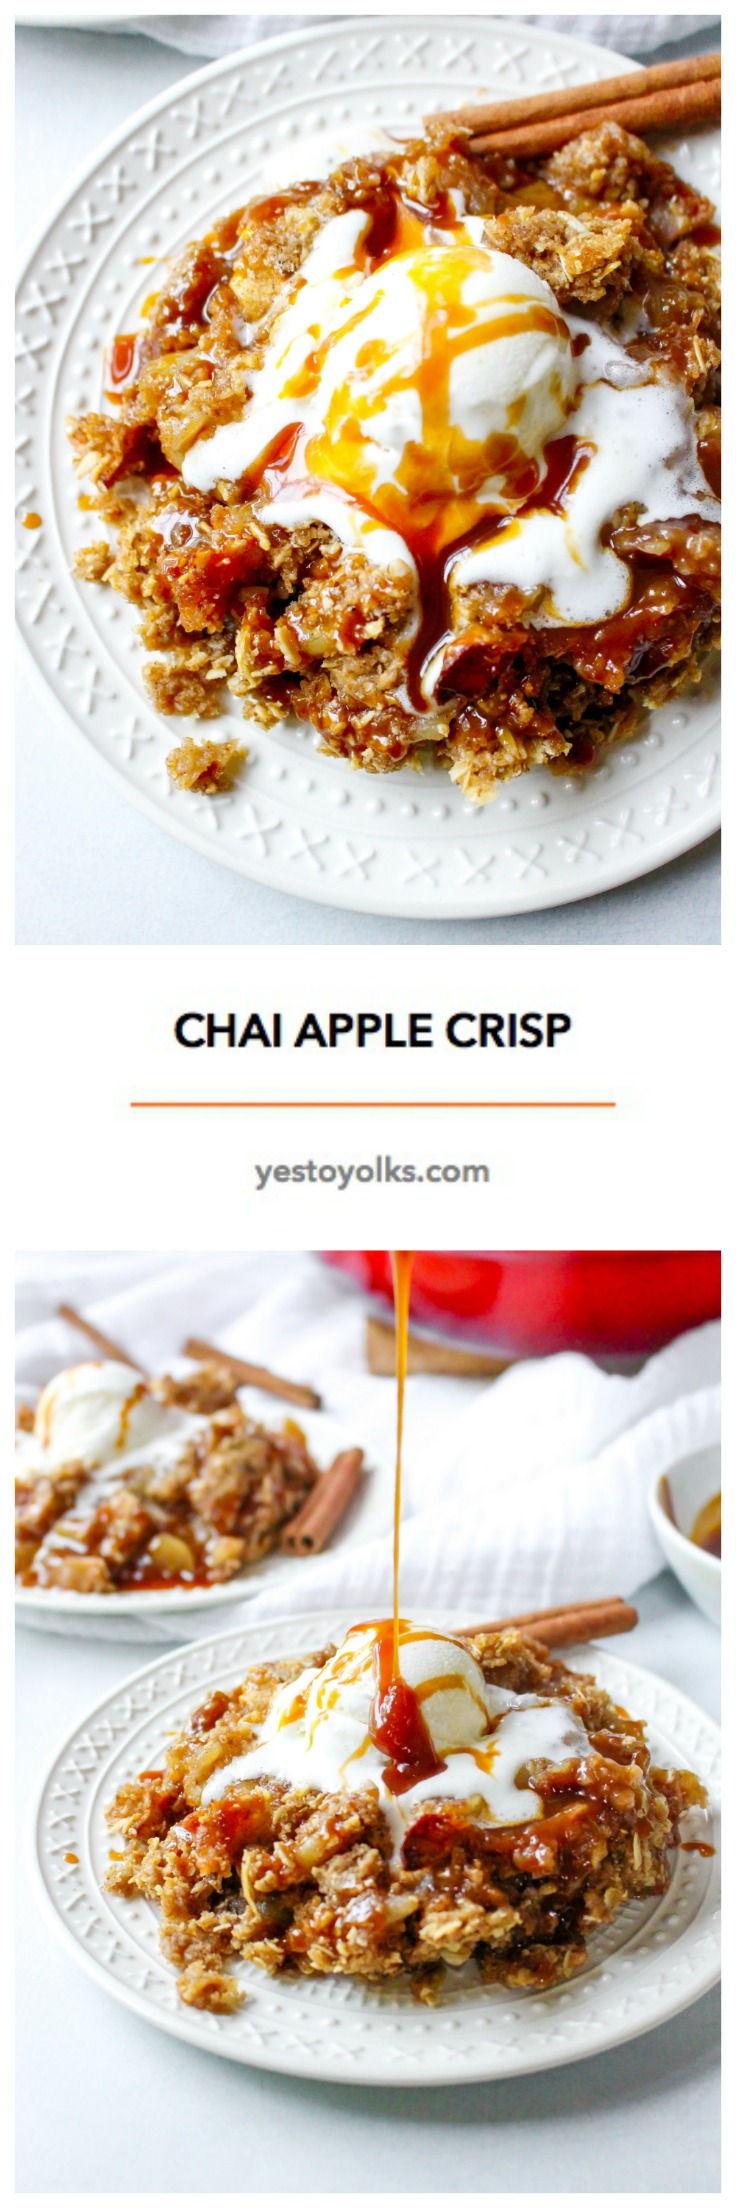 Chai-Apple-Crisp-Pin.jpg